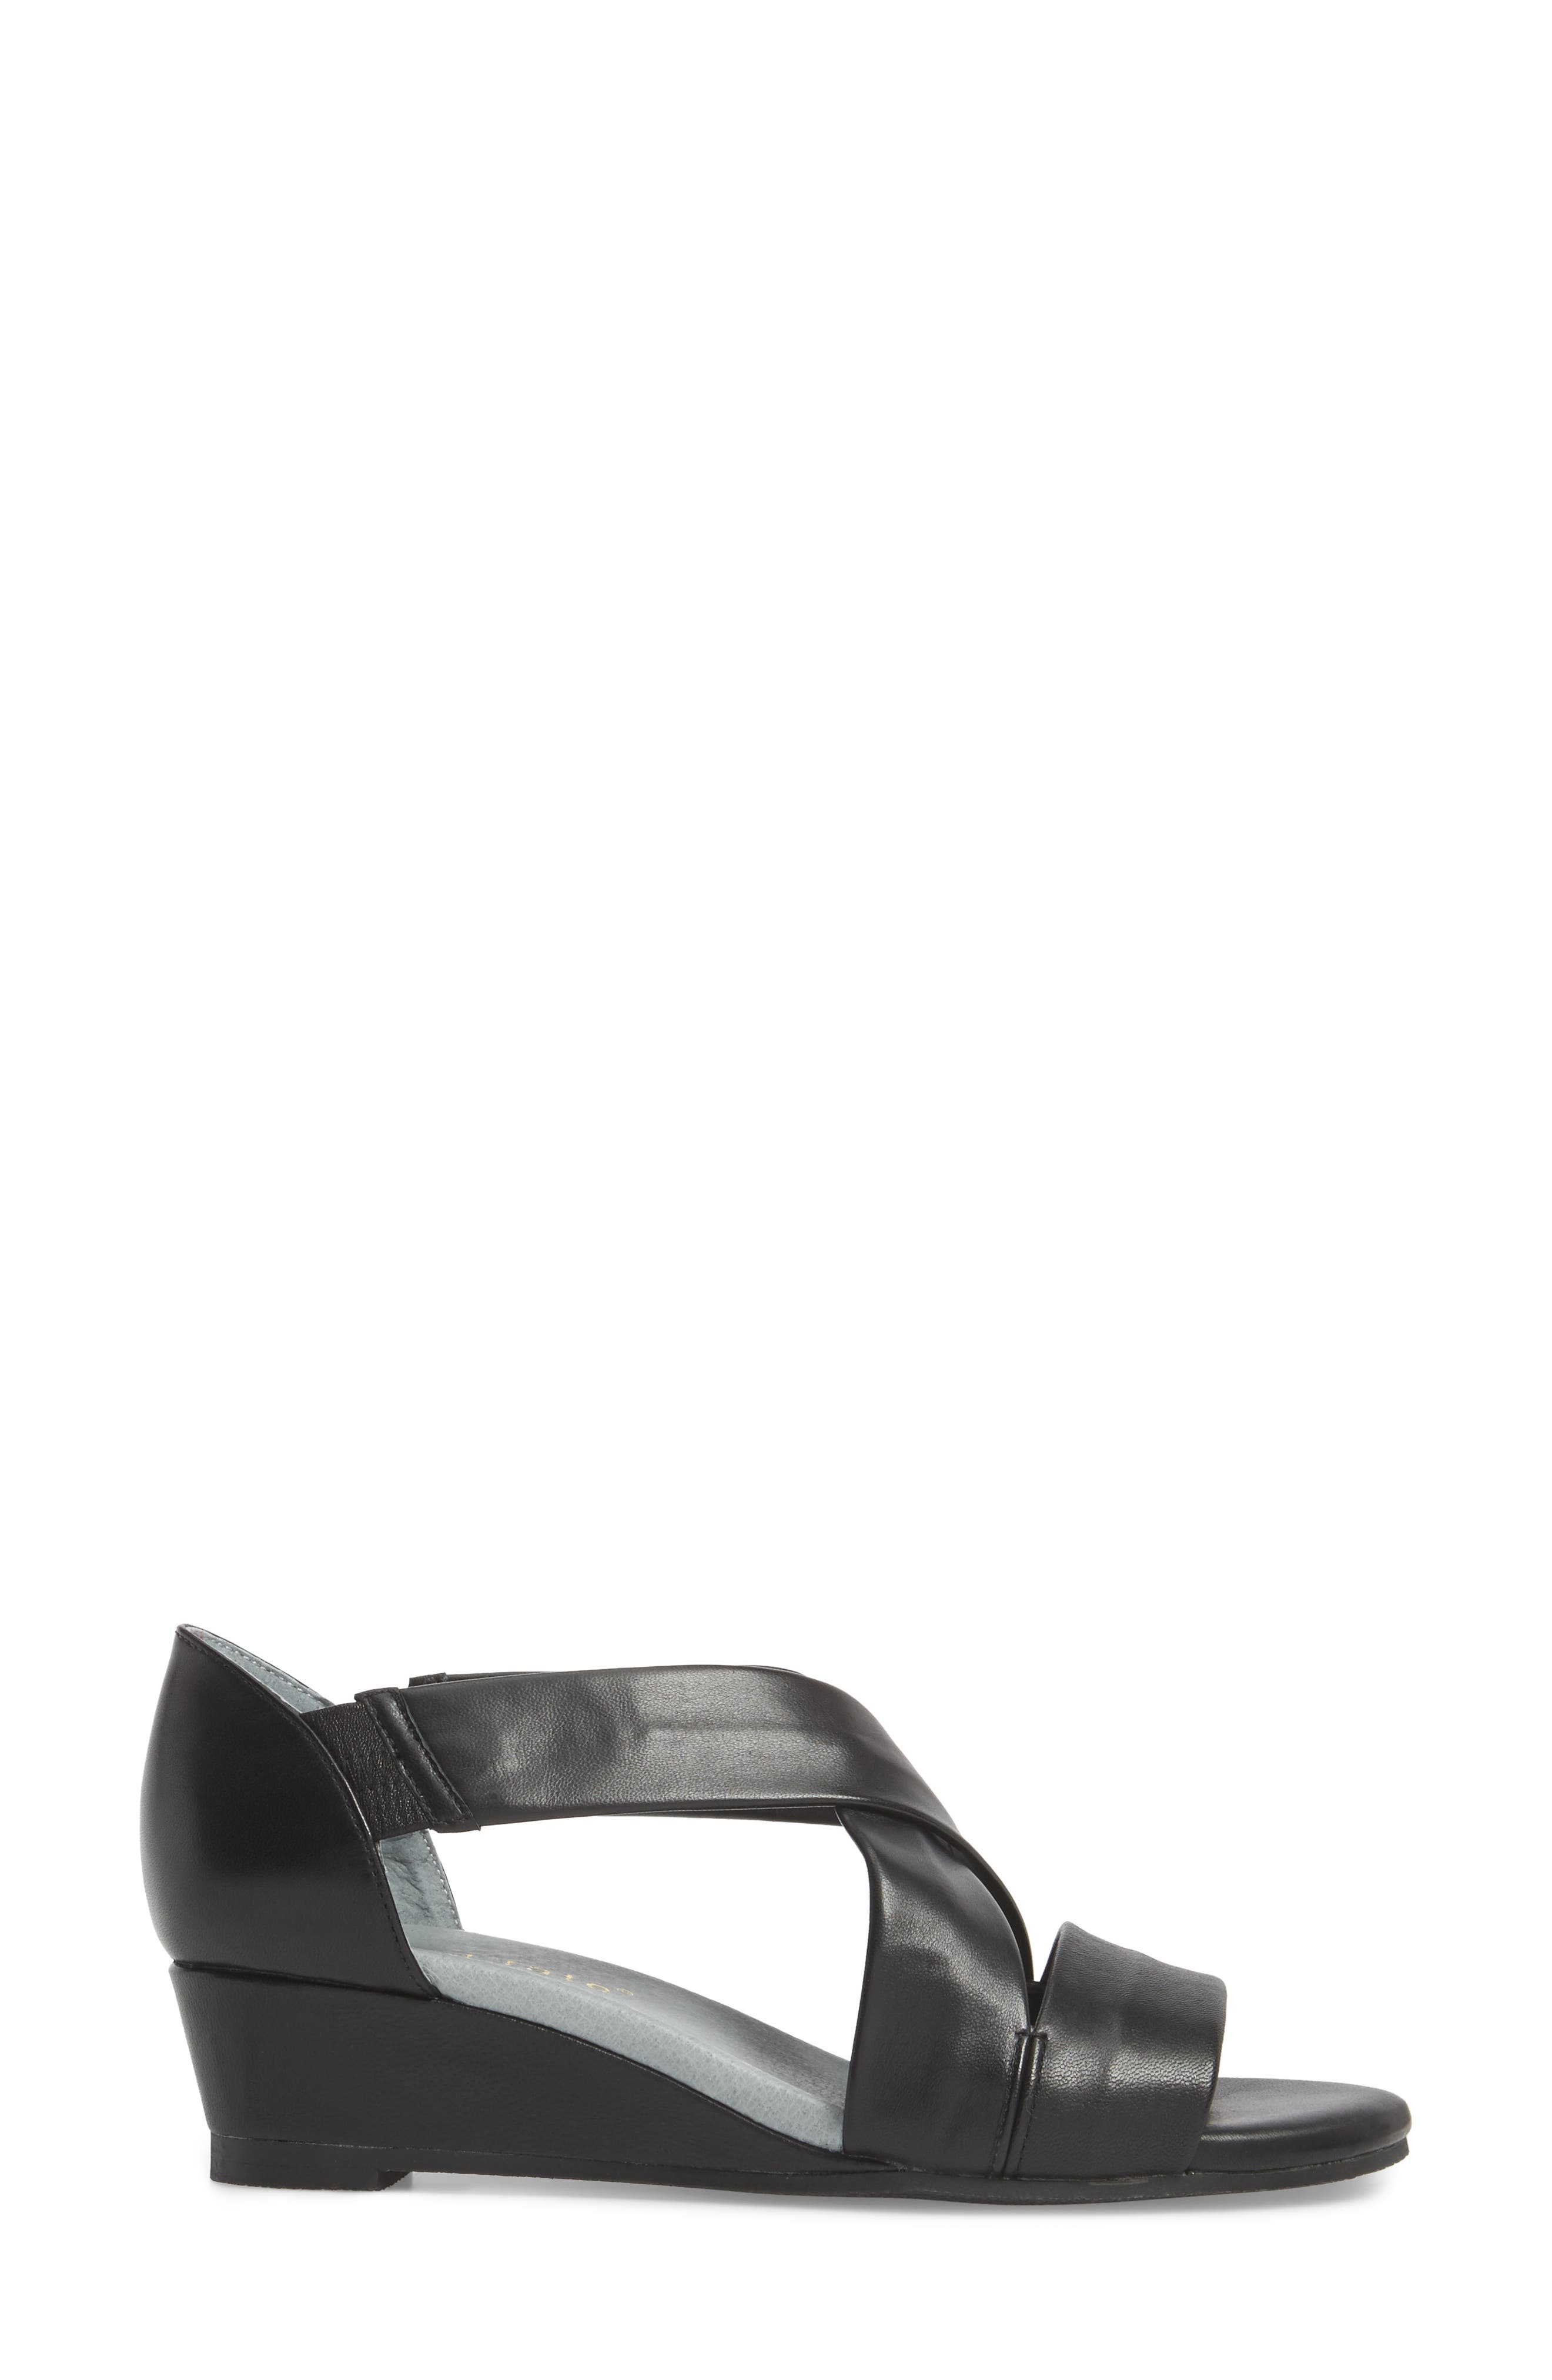 Swell Cross Strap Wedge Sandal,                             Alternate thumbnail 3, color,                             Black Leather